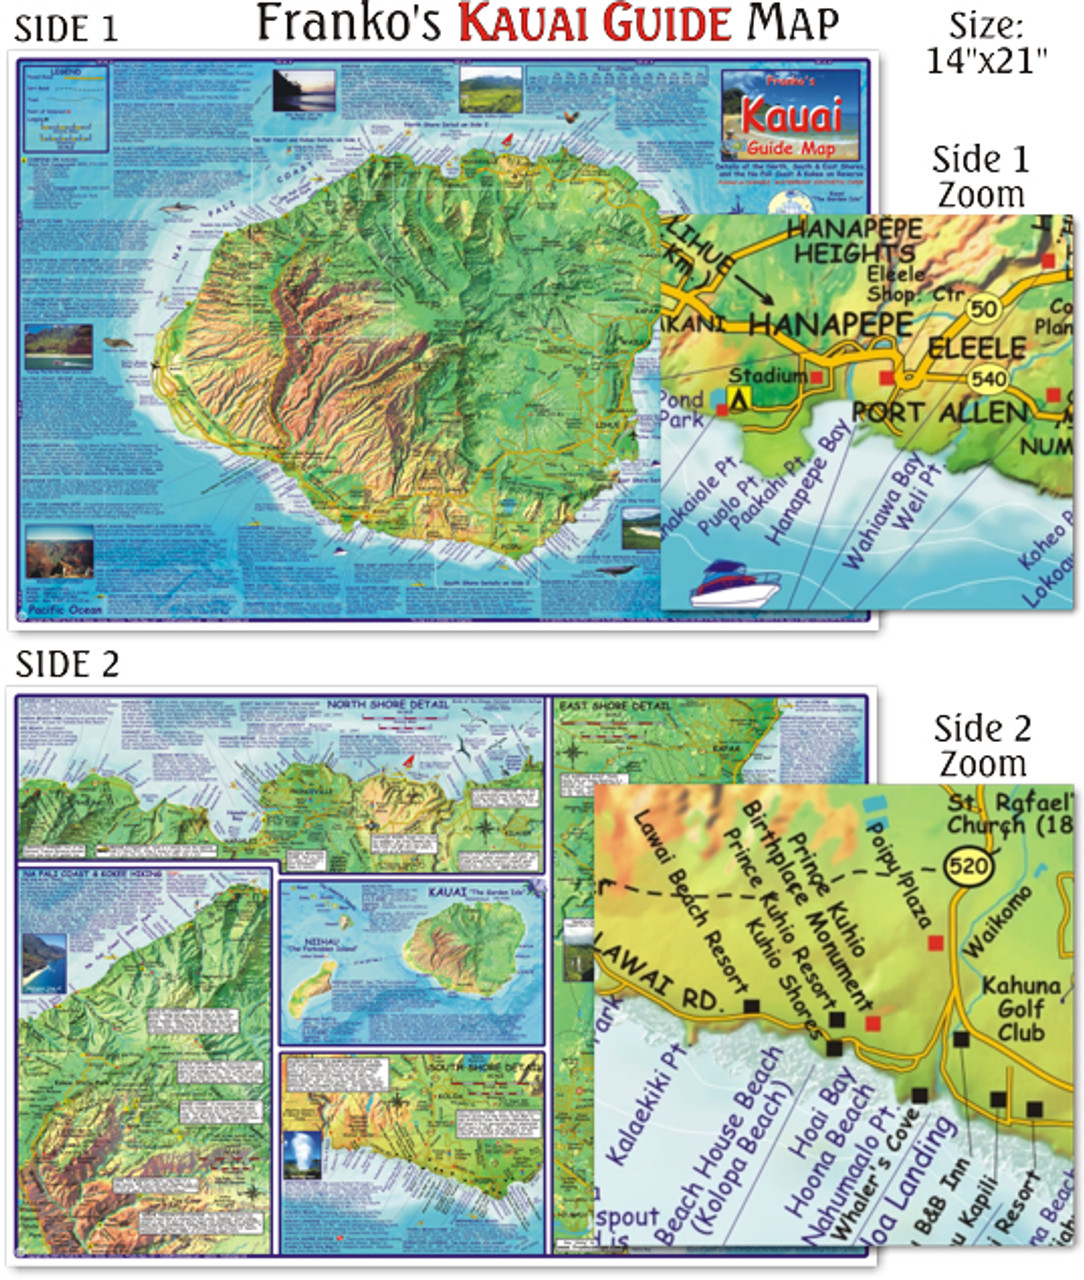 Kauai Guide Map (Laminated) on map of glasgow, map of johannesburg, map of cedar rapids, map of miami, map of madrid, map of lansing, map of norfolk, map of new york, map of salt lake city, map of kona, map of lanai city, map of porto, map of florence, map of kahului, map of ontario, map of hilo, map of honolulu, map of singapore, map of hawaiian islands, map of cancun,